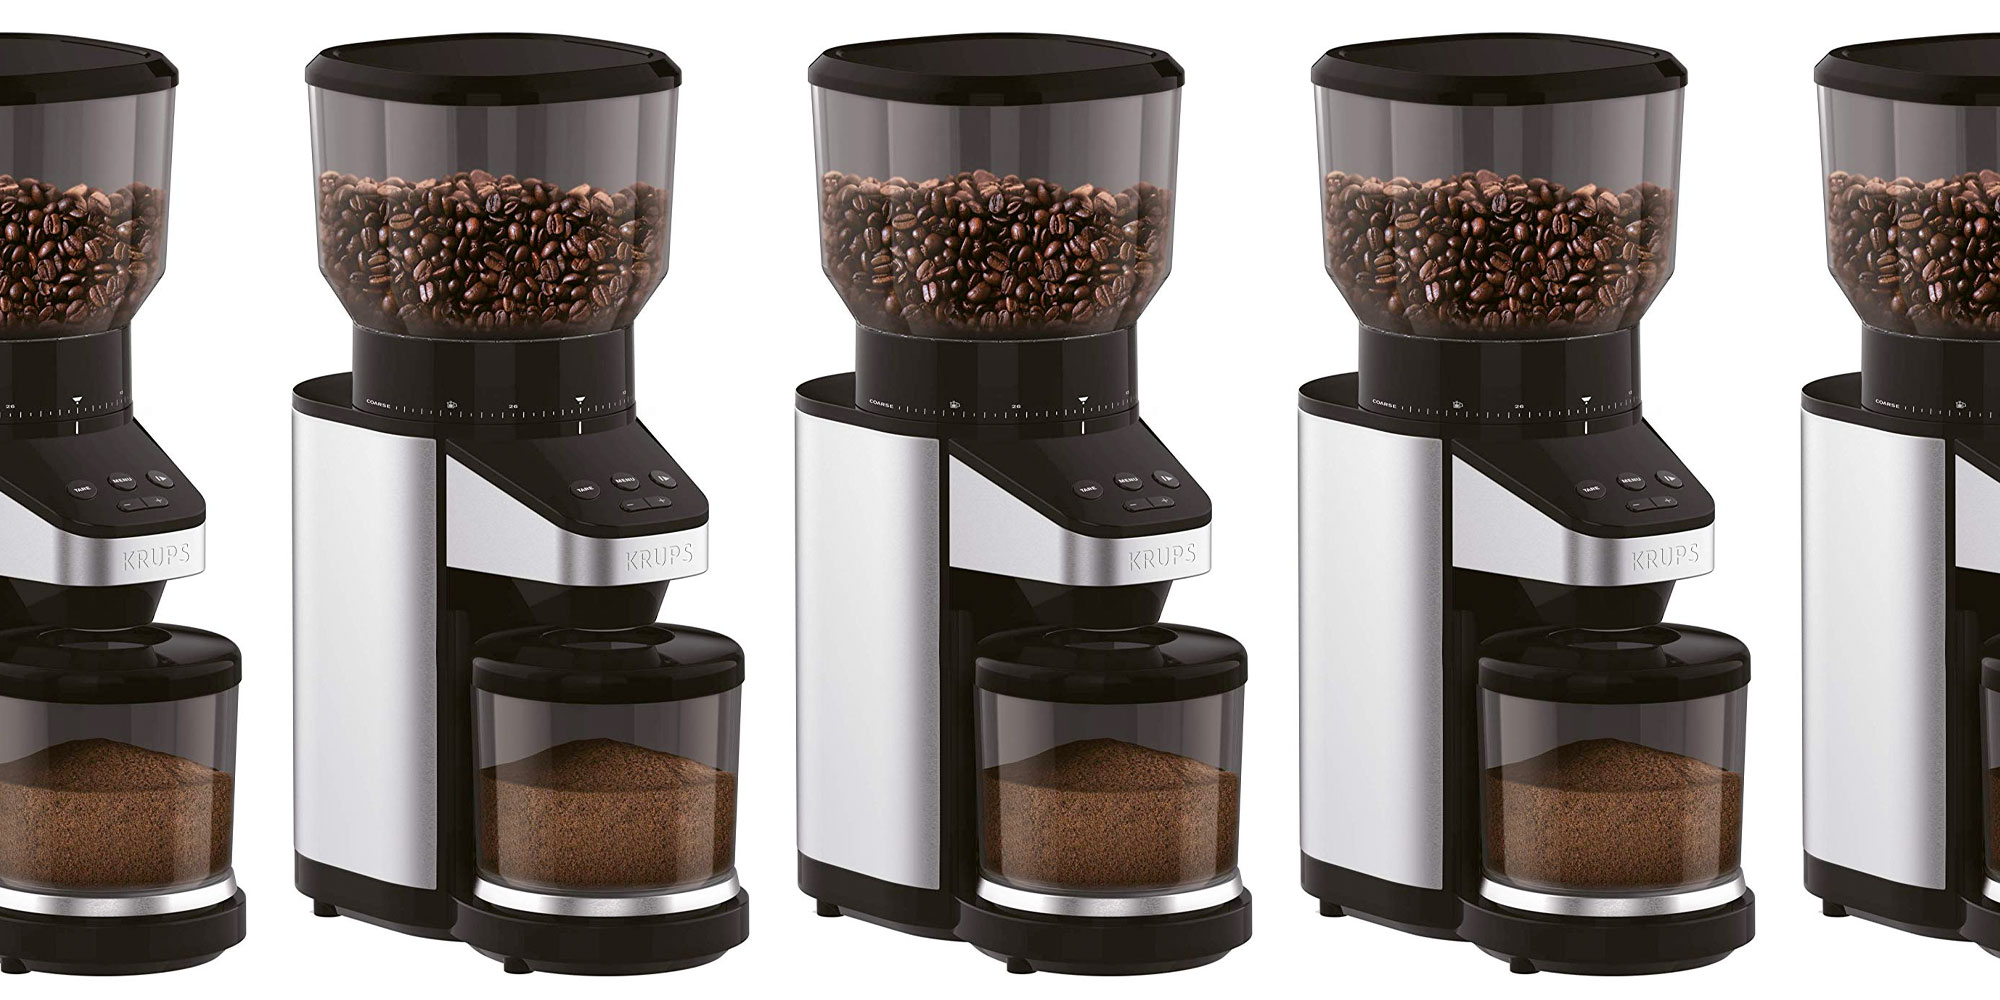 Enjoy fresh ground coffee w/ KRUPS' burr auto grinder w/ scale: $95 (Reg. $150)